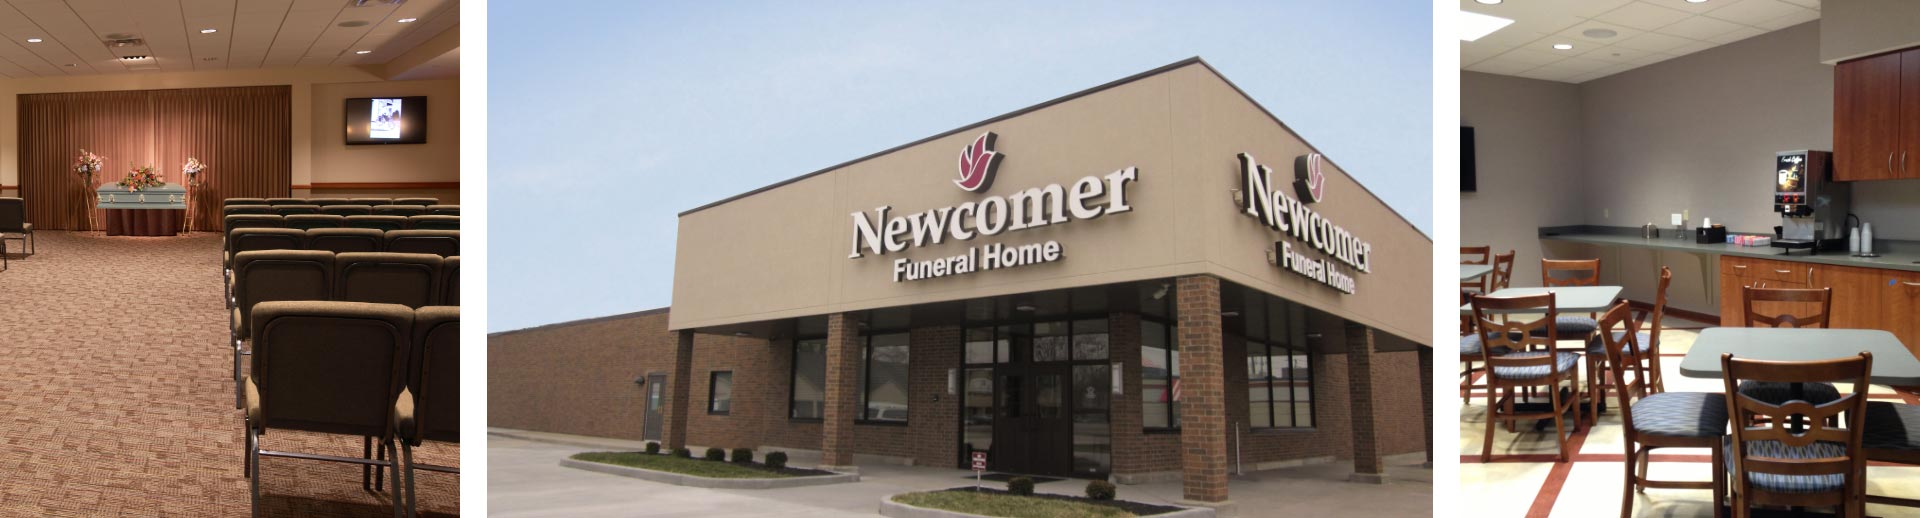 Funeral-Home-Indianapolis-IN